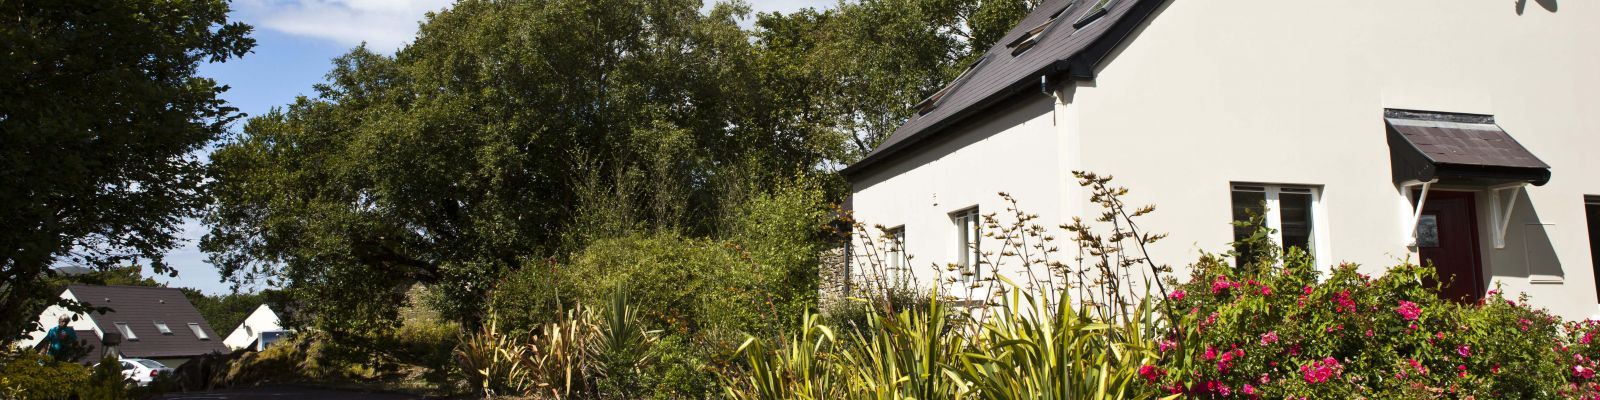 4 Star Self-Catering Accommodation West Cork